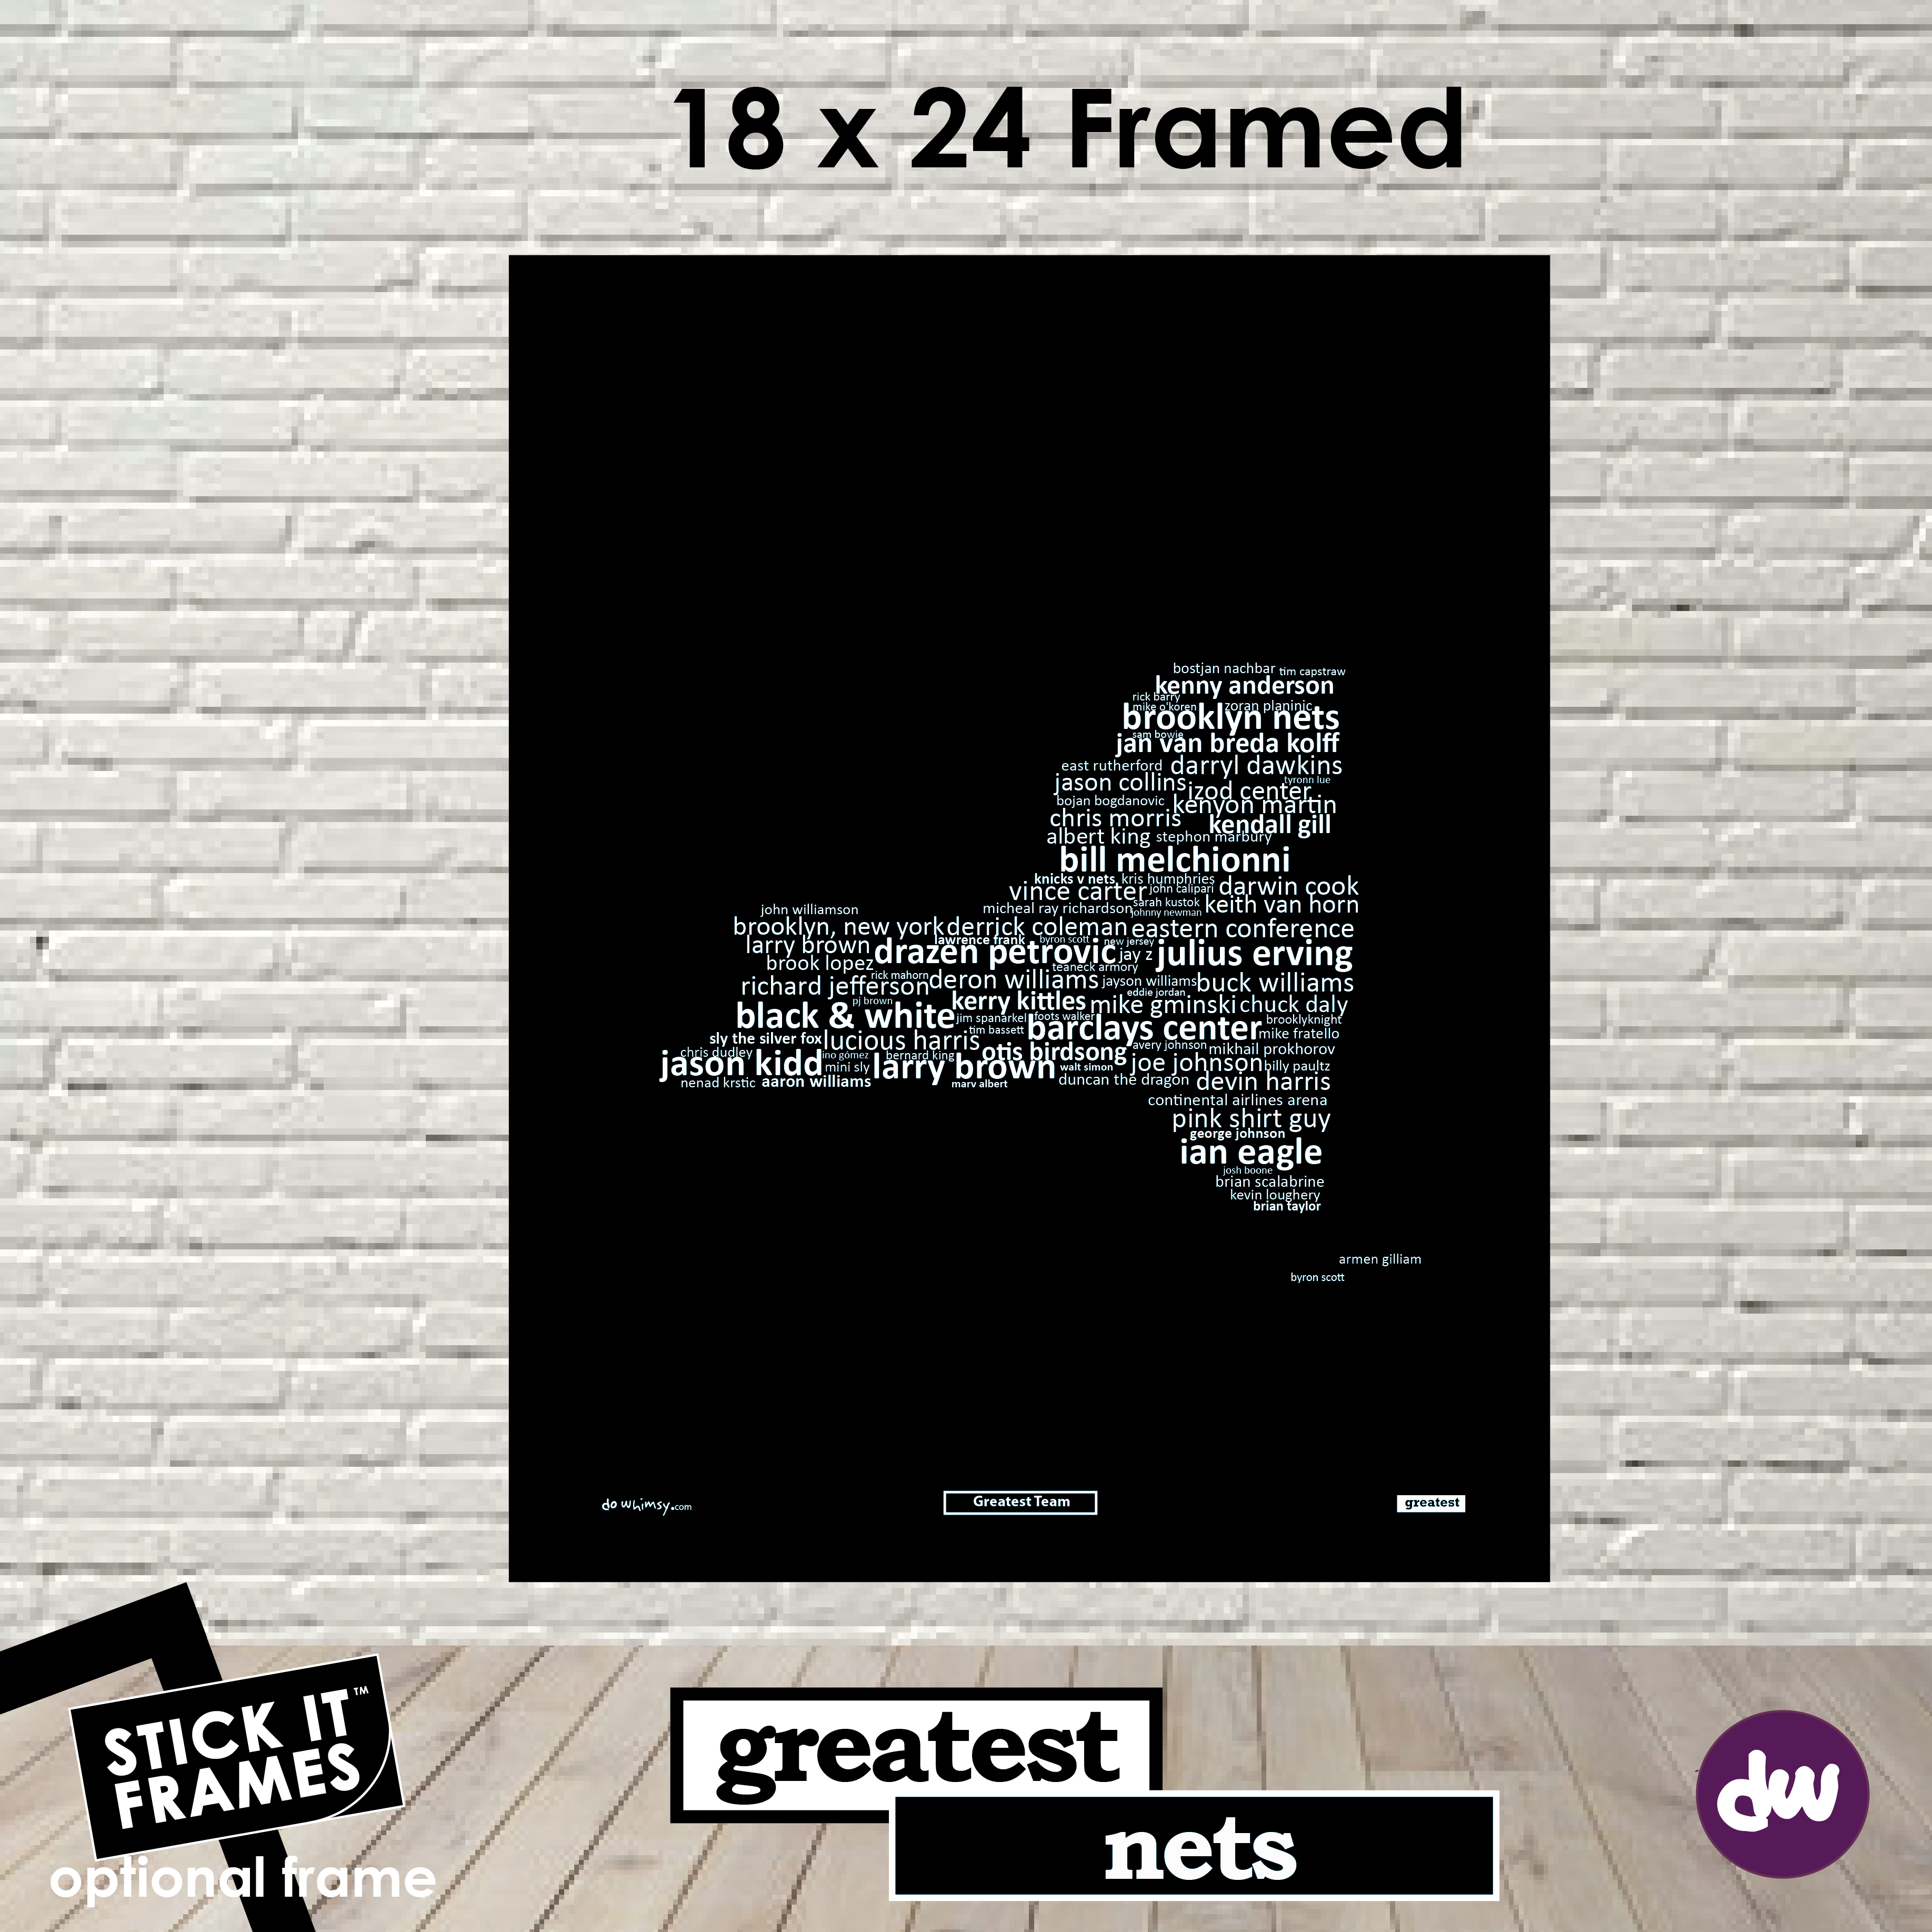 Greatest New York (Nets) - All Products (Shirt, Art, Frames (R))